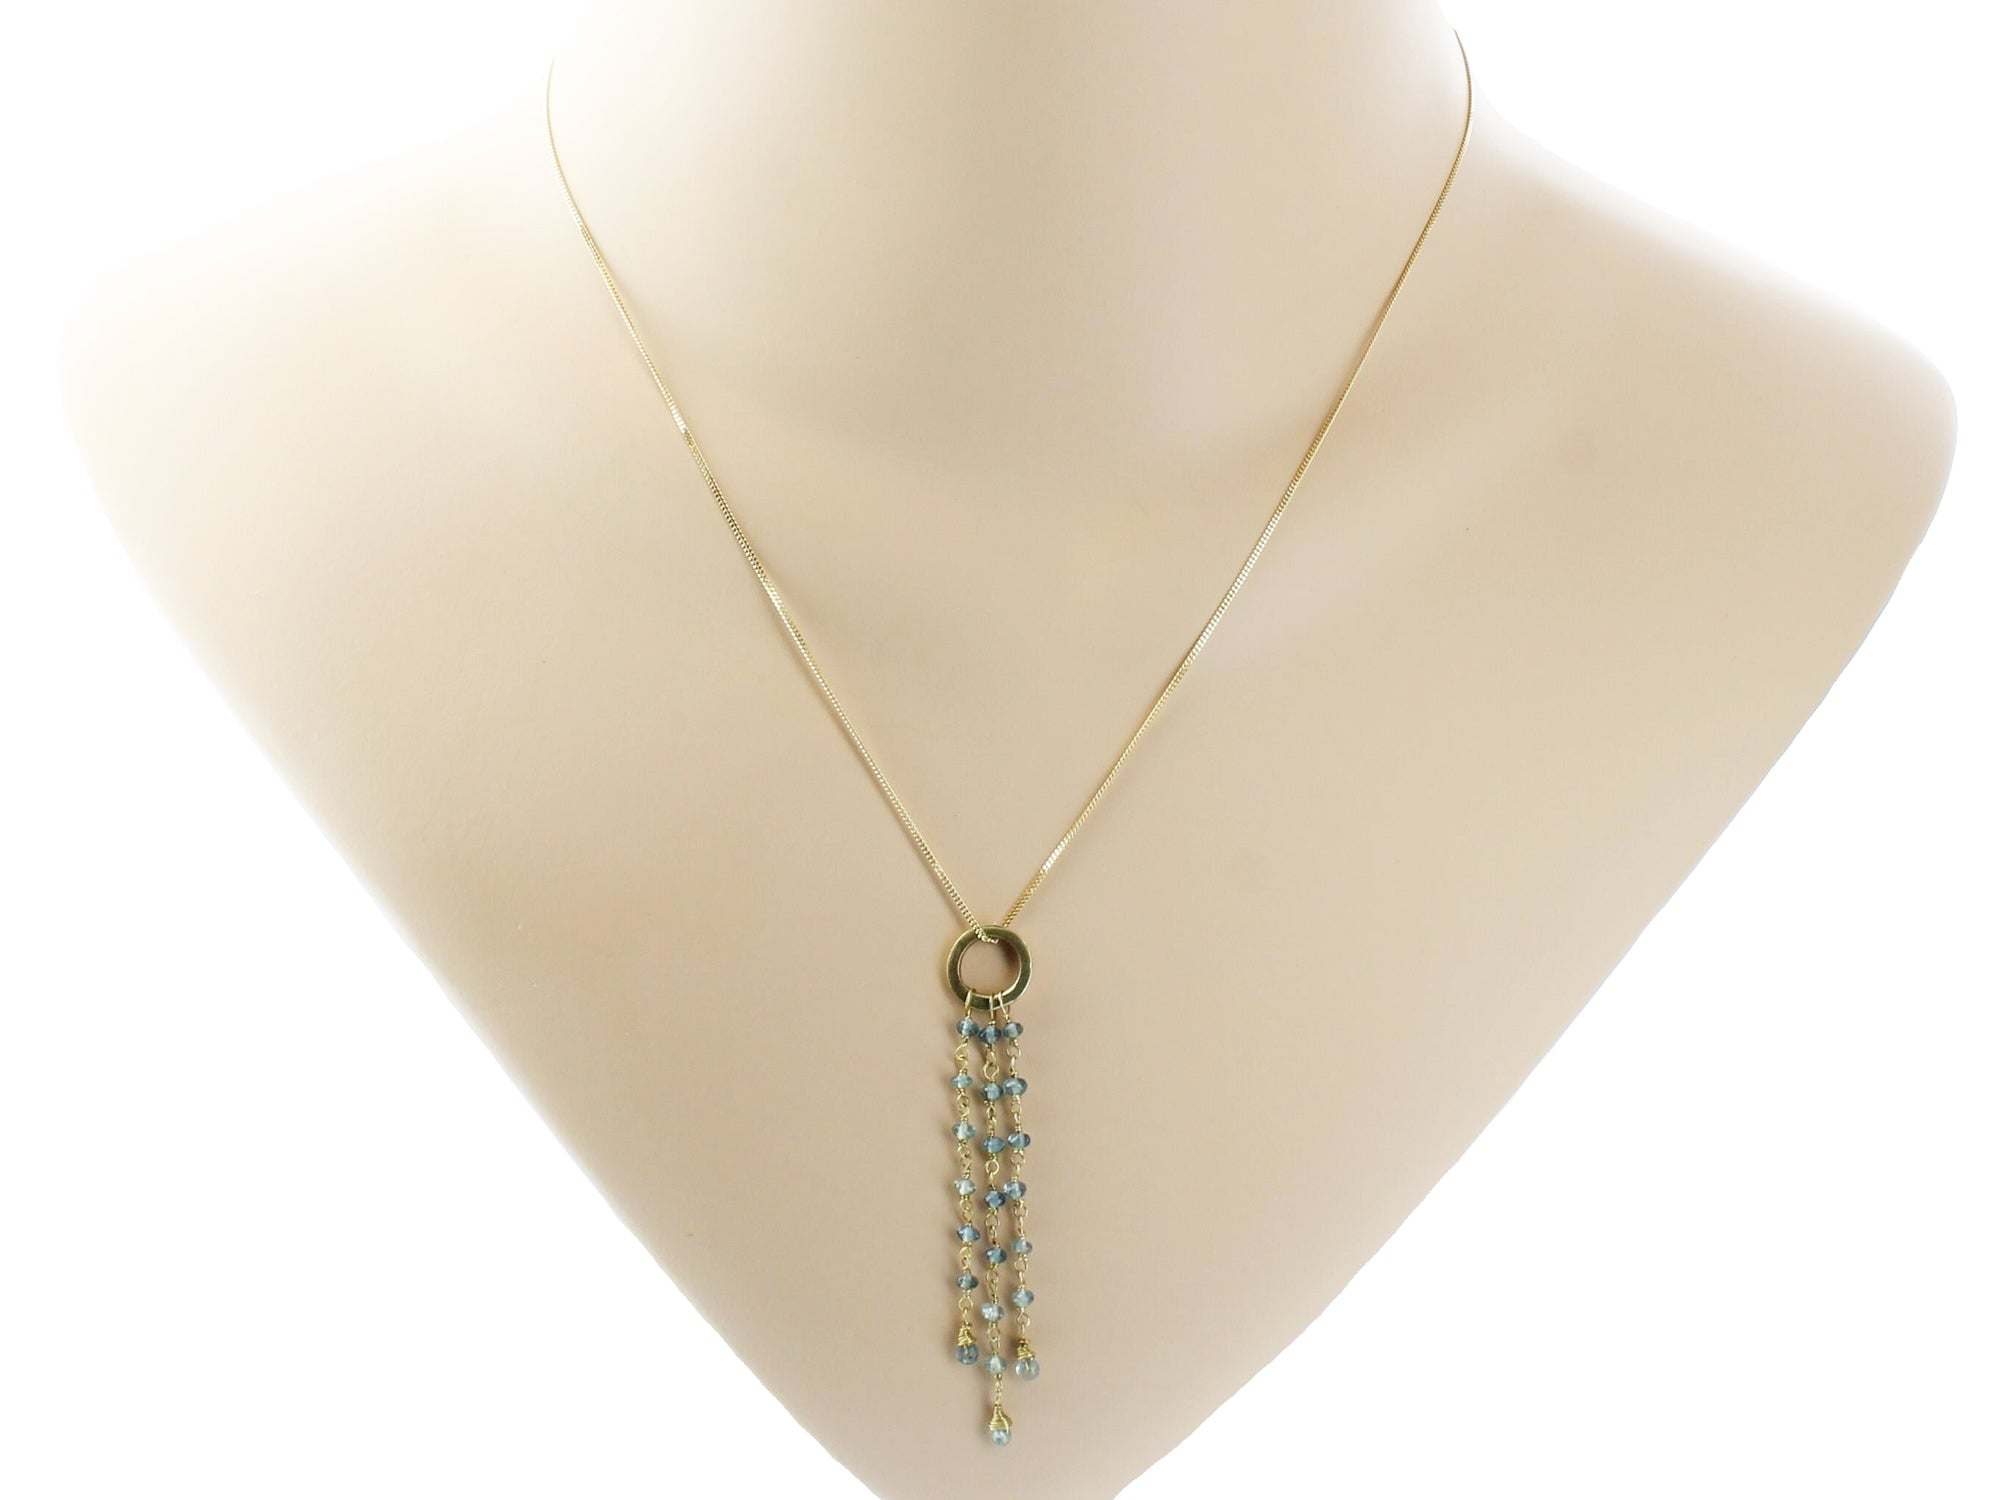 online eco necklace pendant jewels aquamarine christie christies s